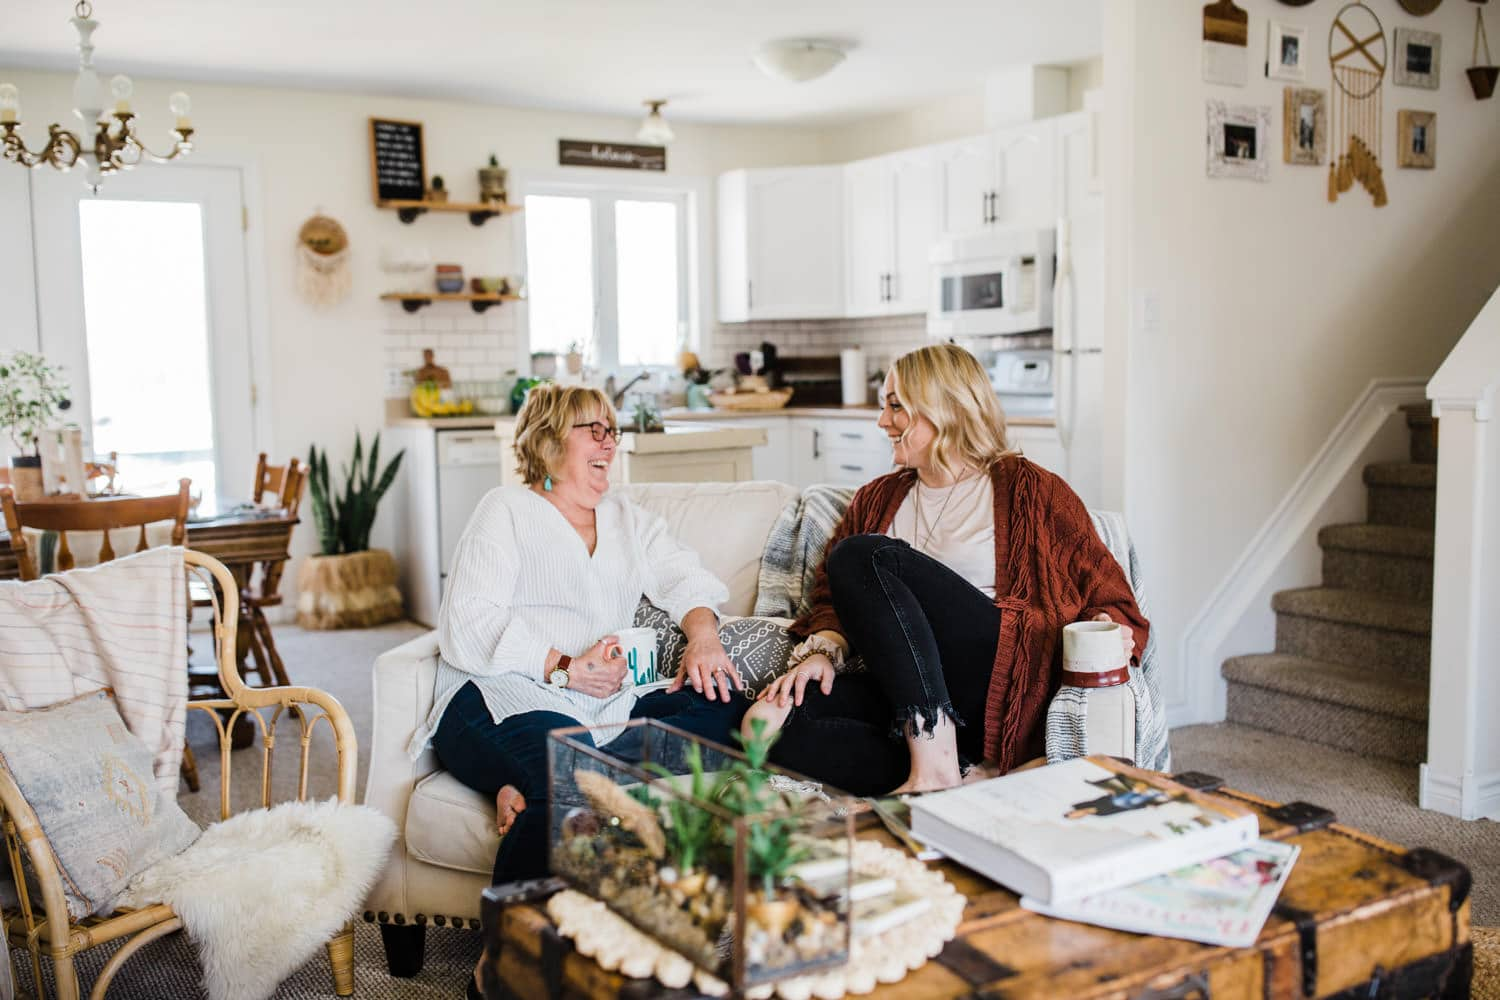 mother and daughter laugh together in living room - small business brand photography